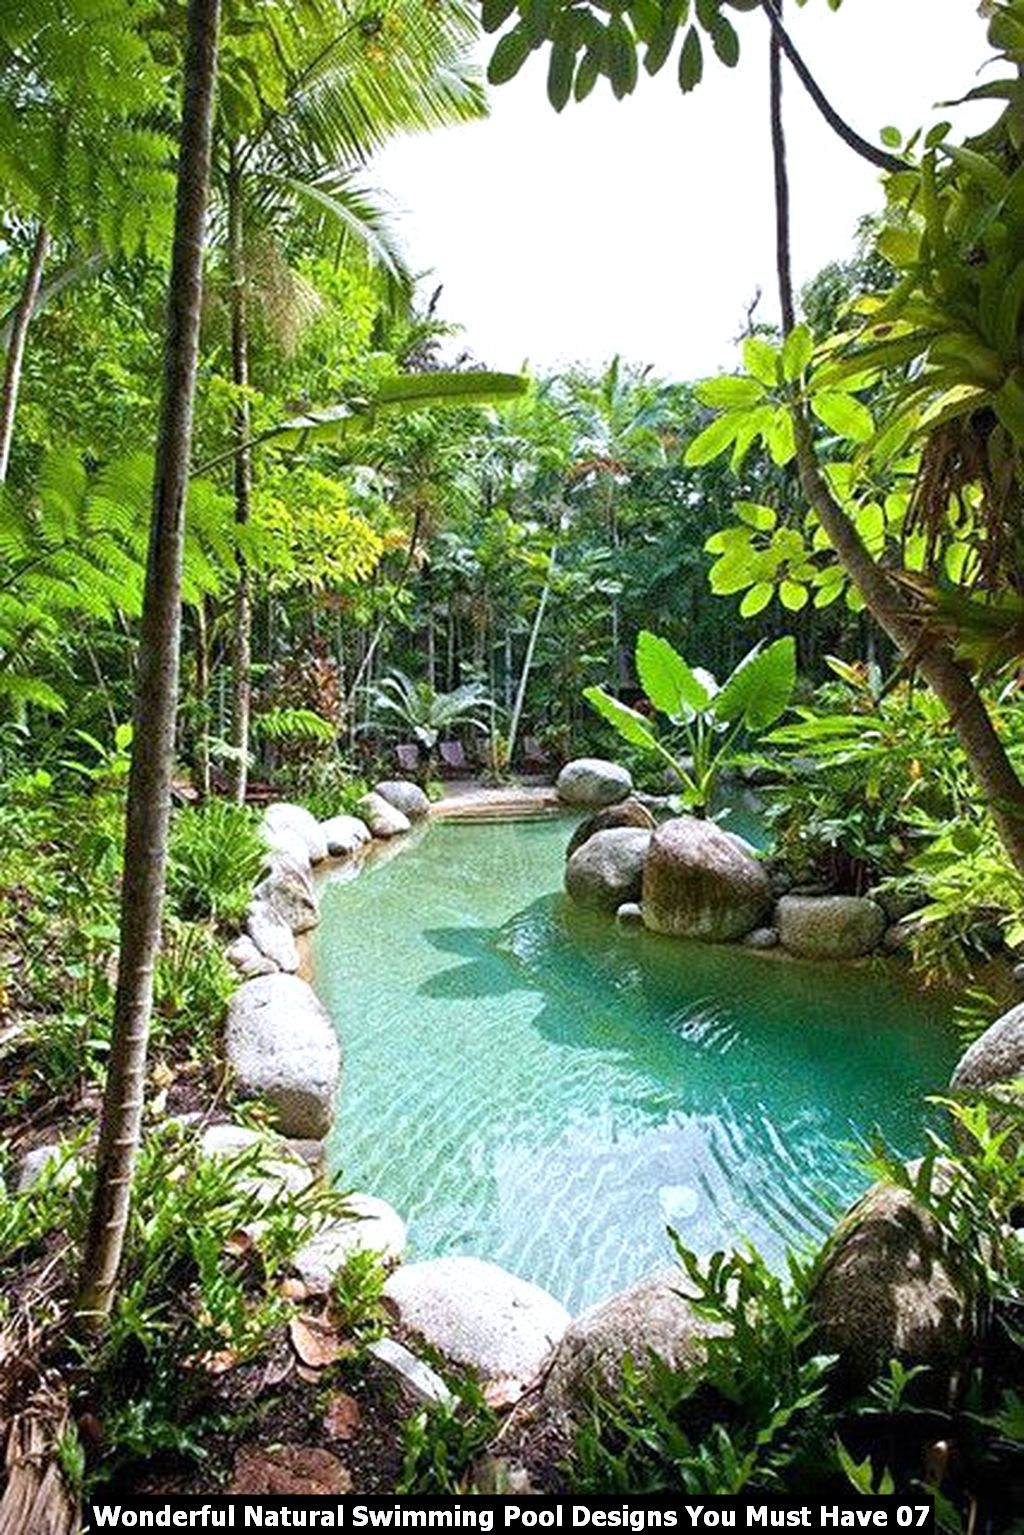 Wonderful Natural Swimming Pool Designs You Must Have 07